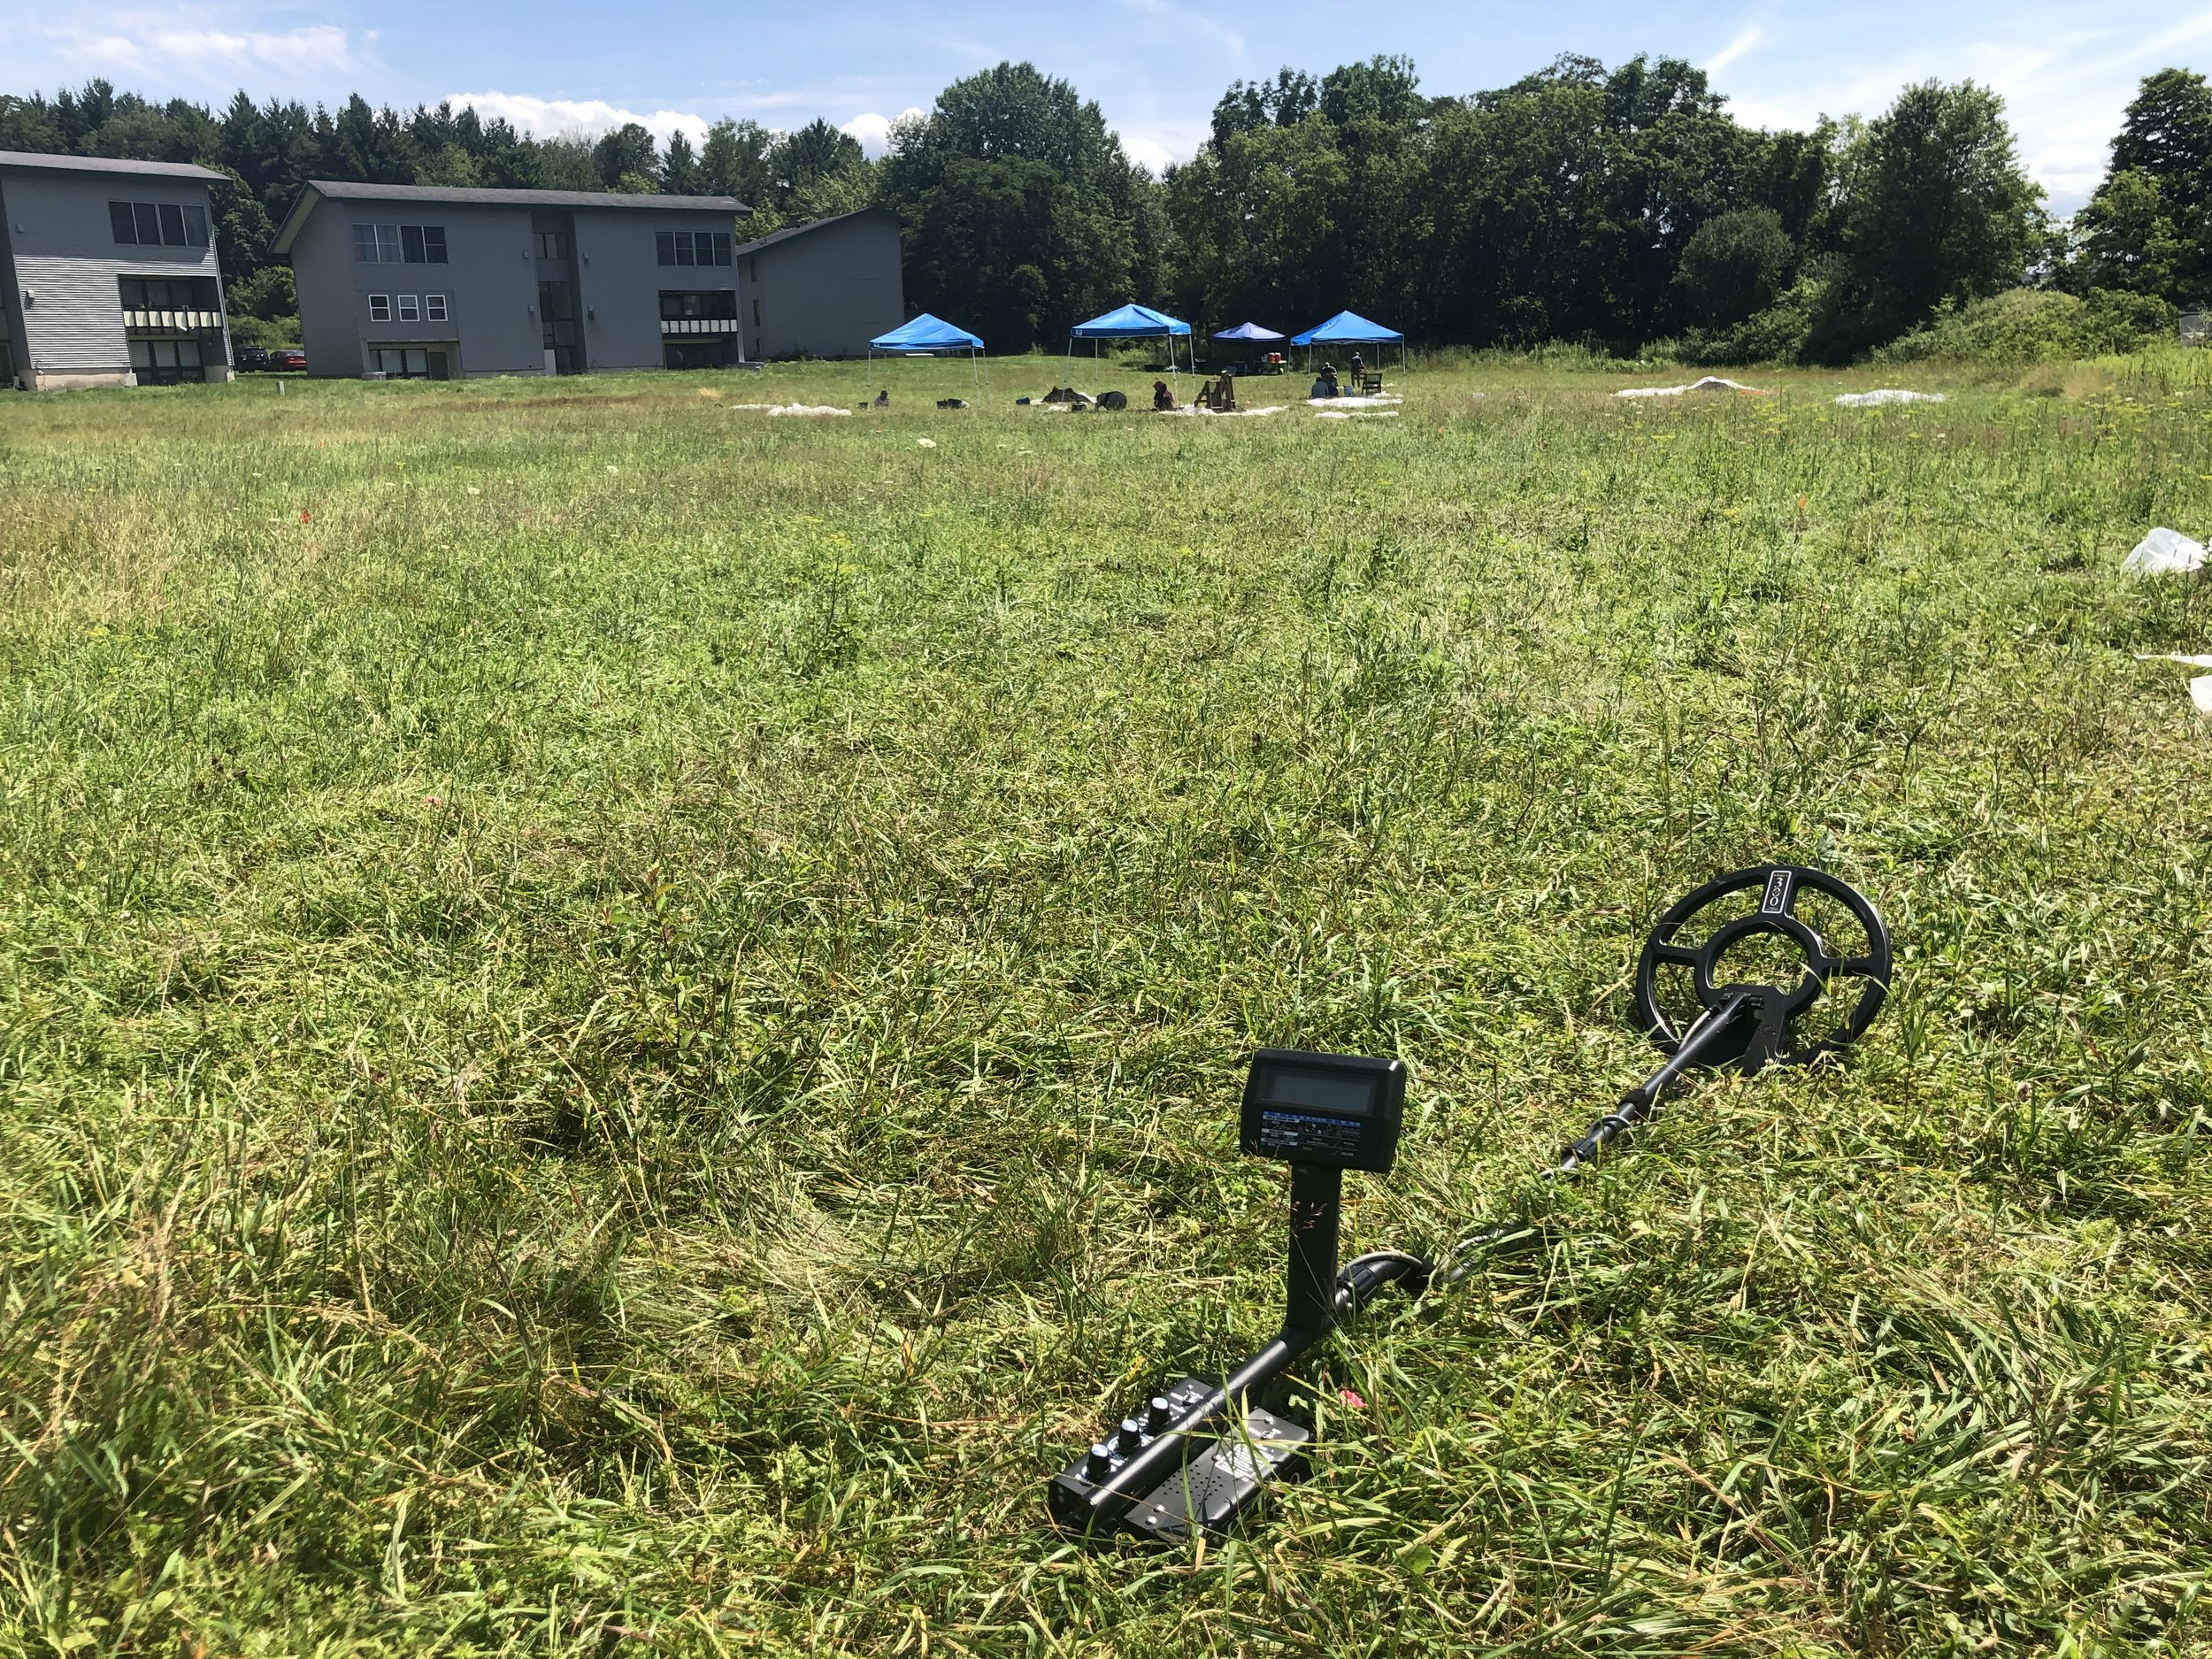 Dr. Kruczek-Aaron's team used metal detectors to help determine the most promising places to dig. (Photo credit: Nicole Roché)